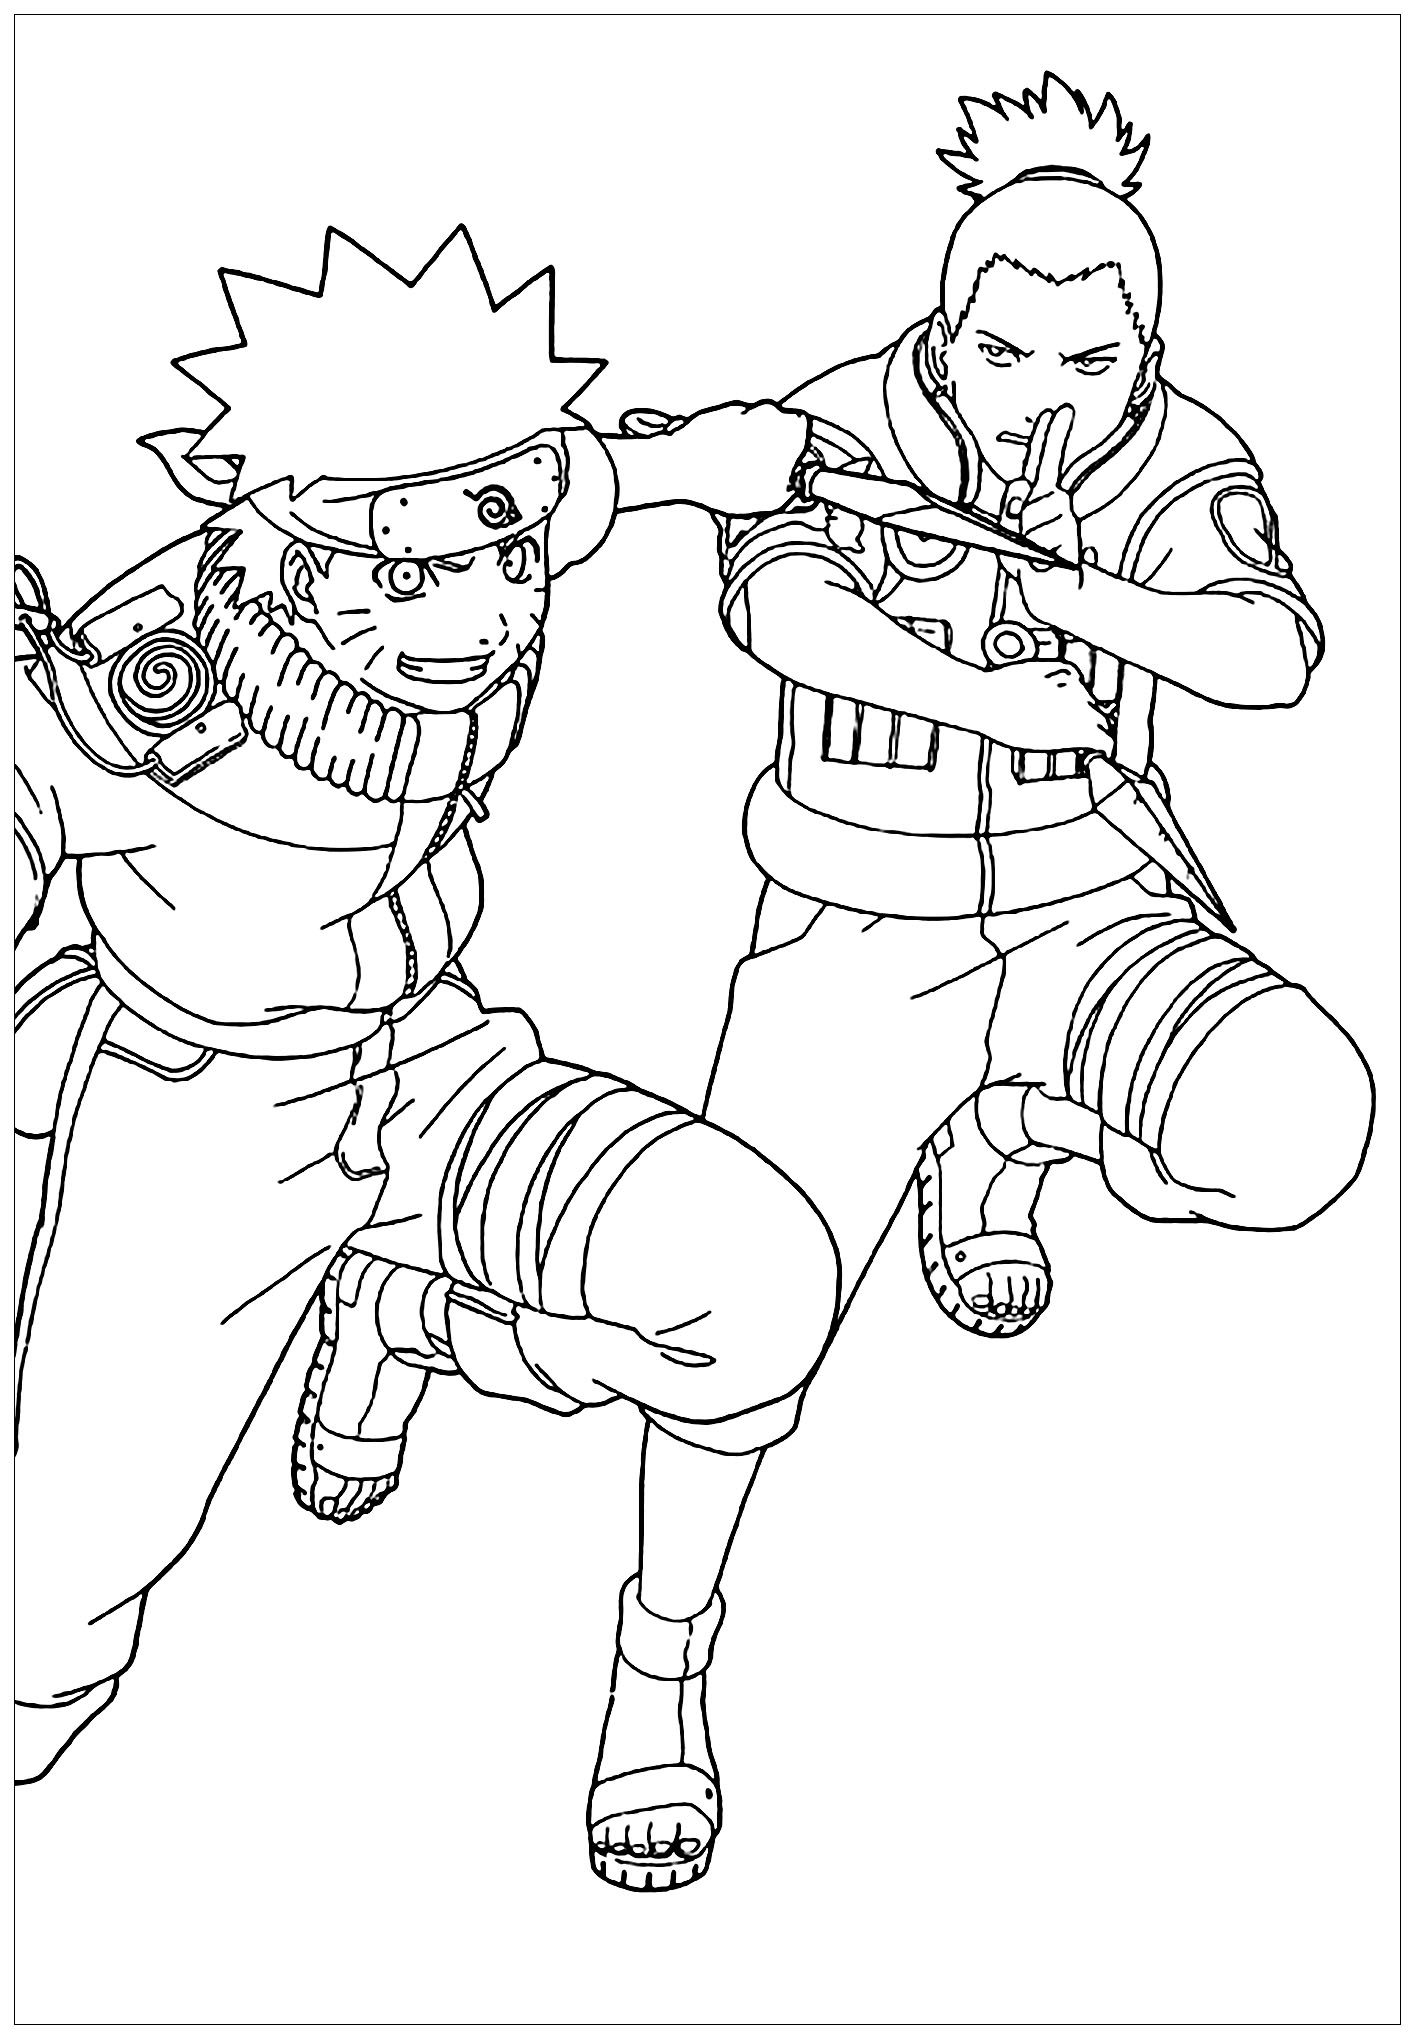 naruto coloring pages naruto coloring pages naruto pages coloring 1 1